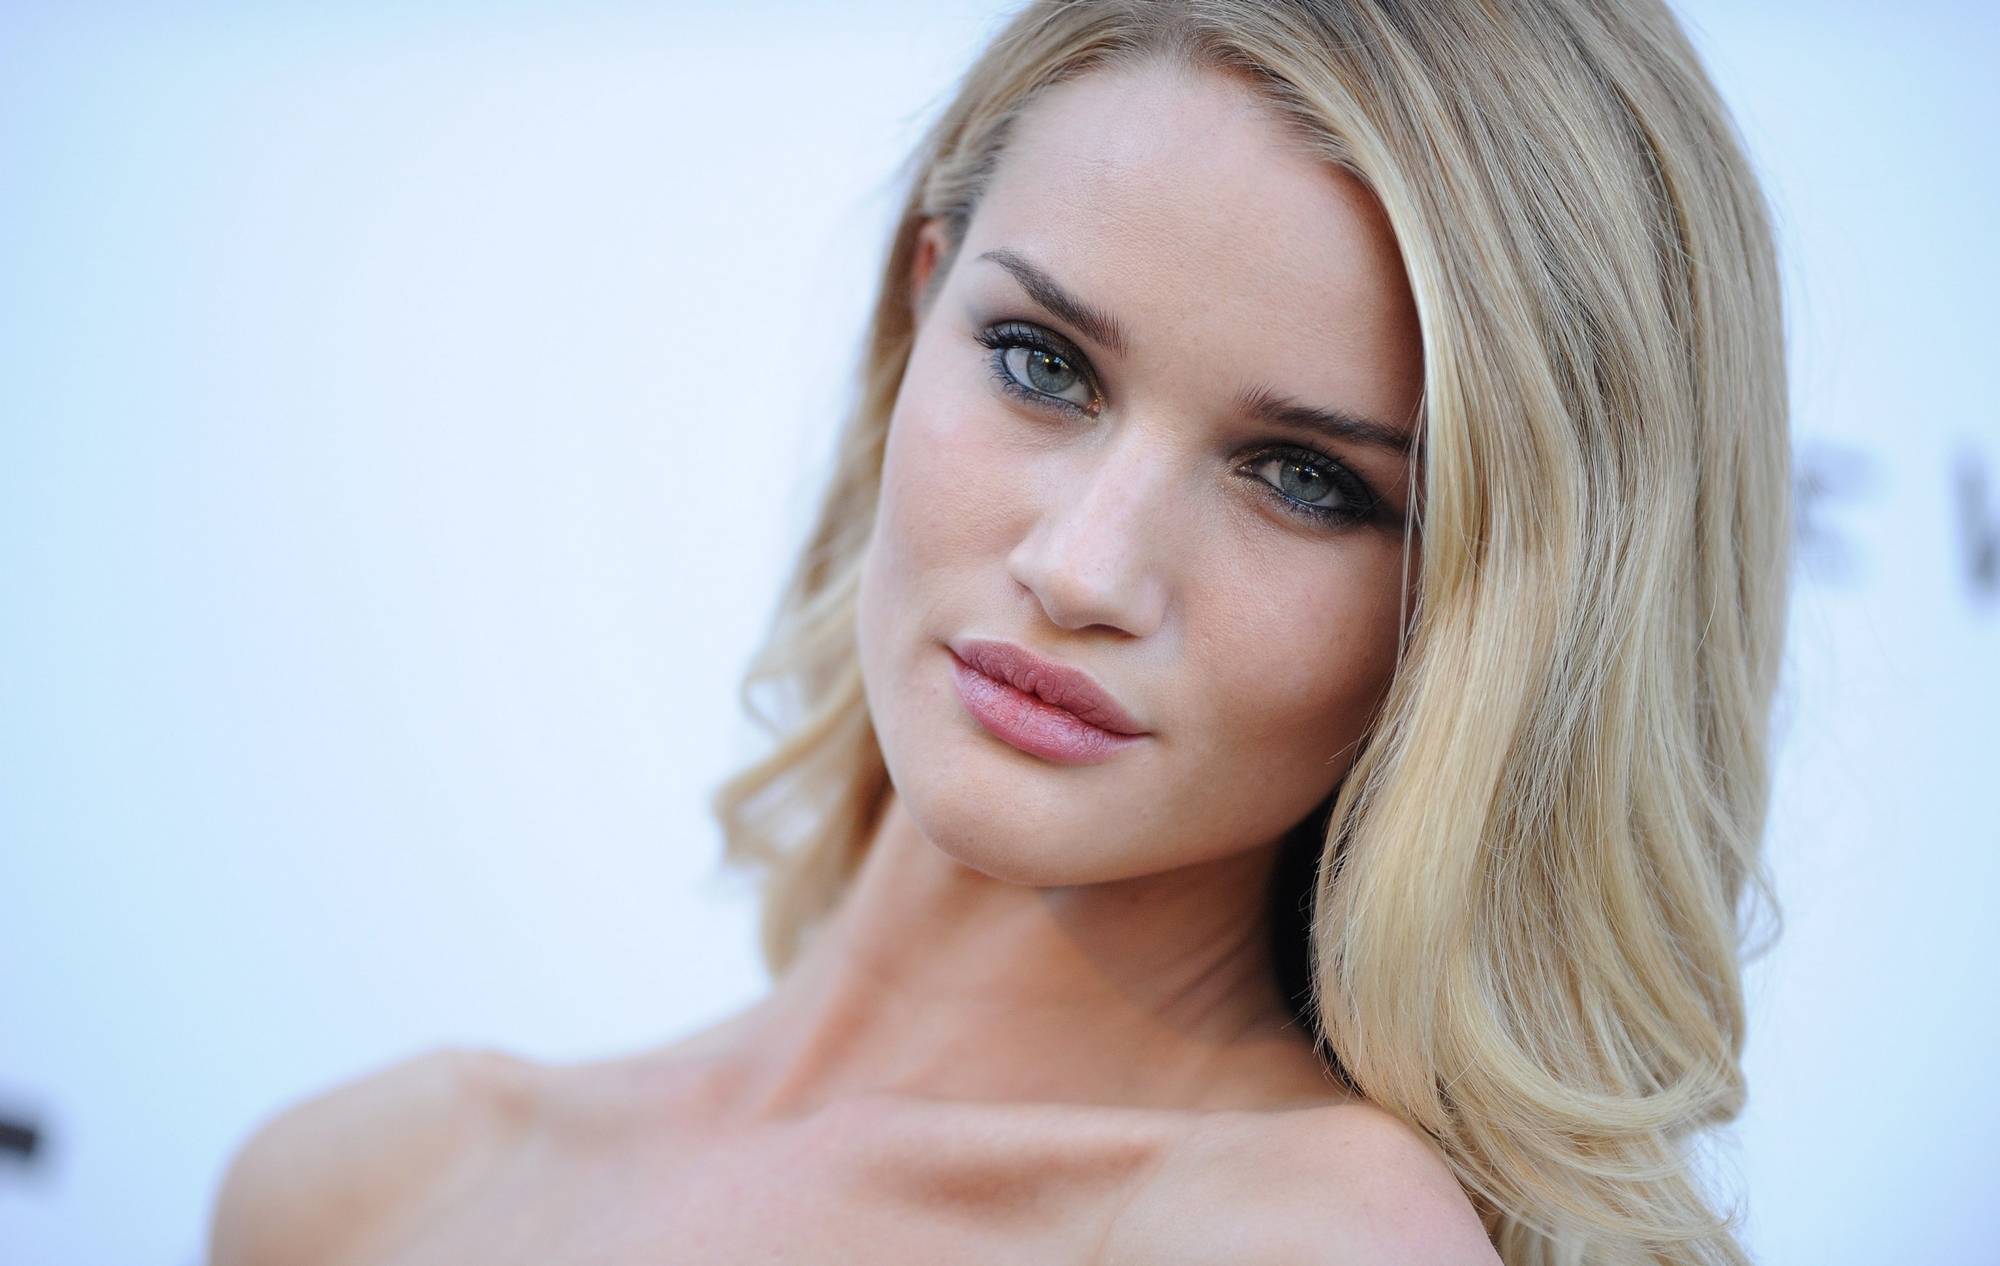 rosie huntington-whiteley wallpapers, pictures, images